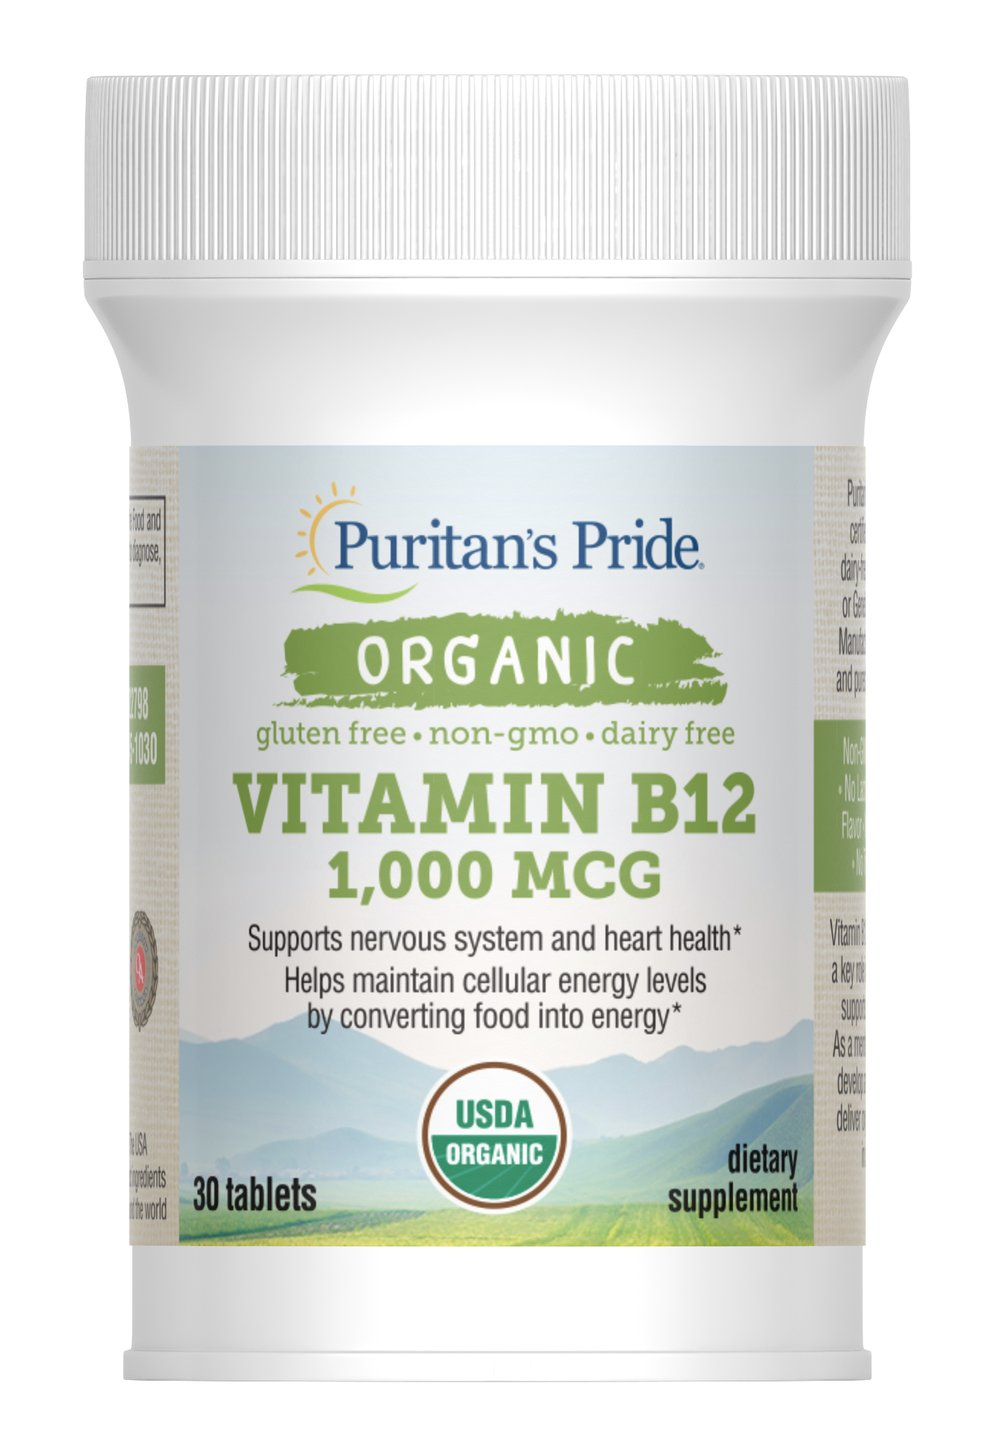 Organic Vitamin B-12 1,000 mcg Thumbnail Alternate Bottle View